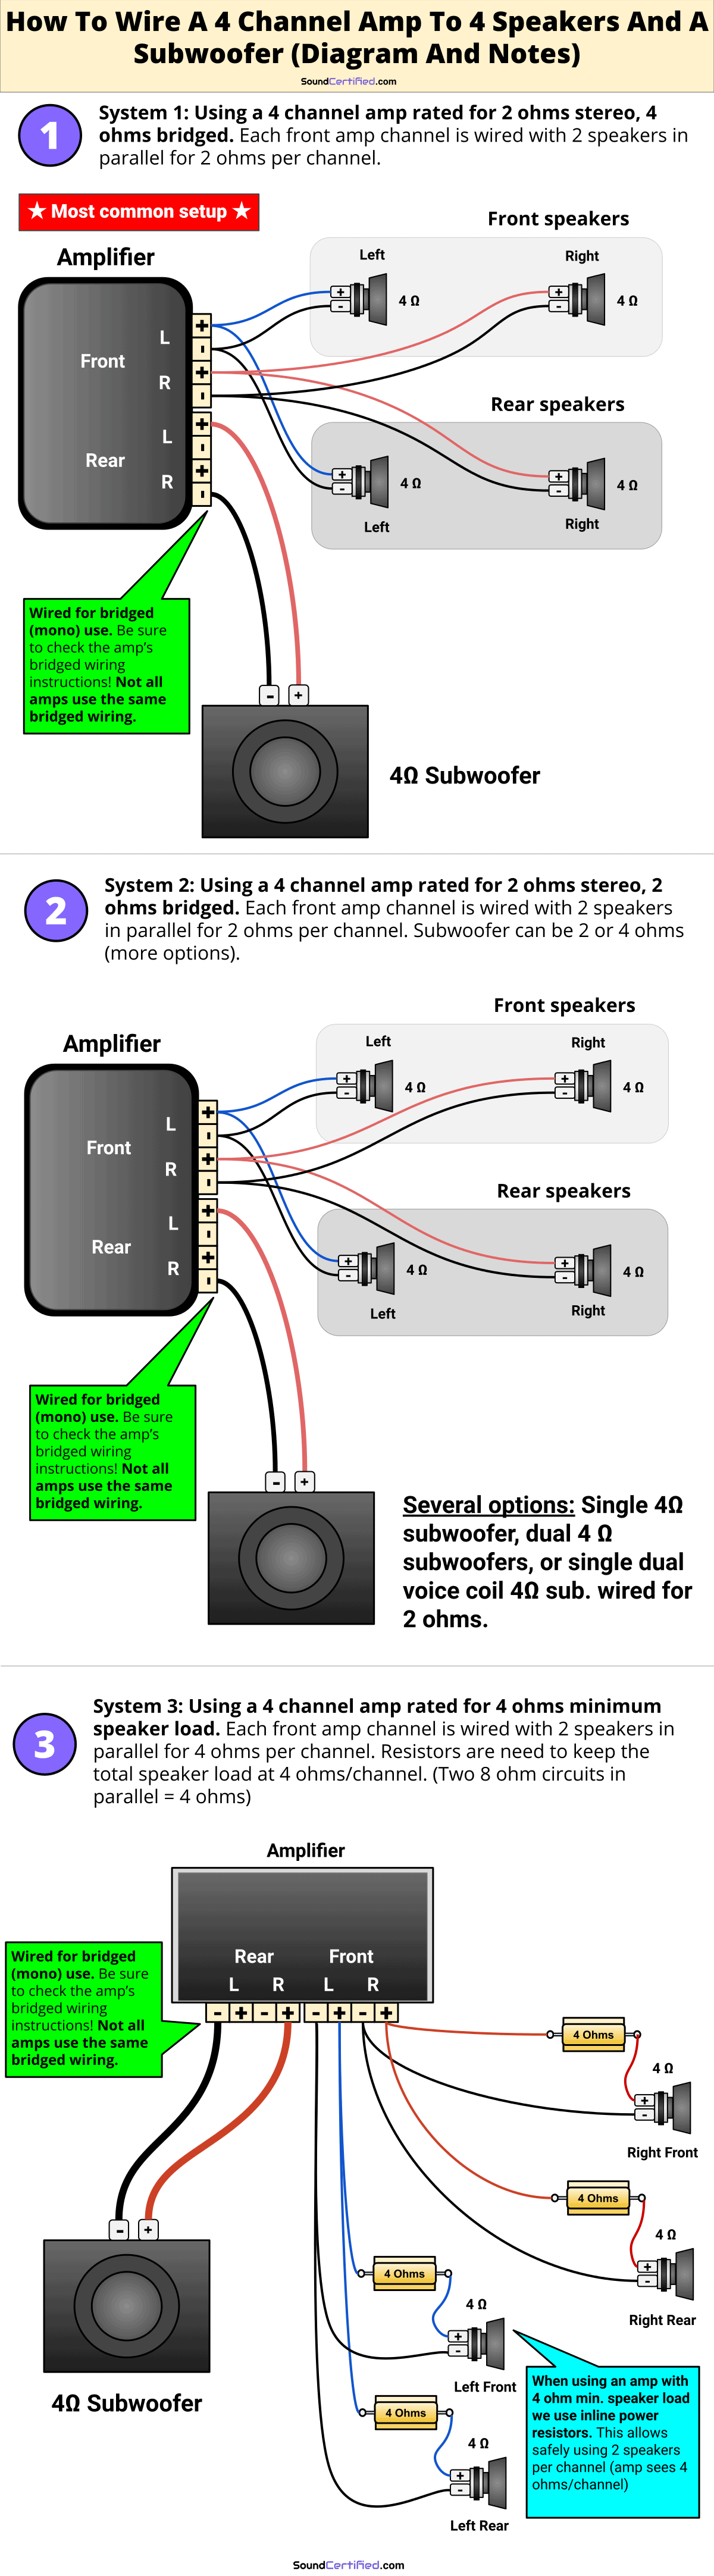 Channel Amp Wiring Diagram Single Subwoofer on 2 channel amp diagram, bridging 4 channel amp diagram, guitar string diagram, sound system diagram, 4 channel amp 4 speakers 1 sub, 4 channel amplifier installation kit, 4 channel keyboard amps, 4 channel momentary remote wiring diagram, bridged amp diagram, 4 channel audio amplifier, 4 channel car amp, 1999 ford f-250 fuse box diagram, 4 channel marine amps,